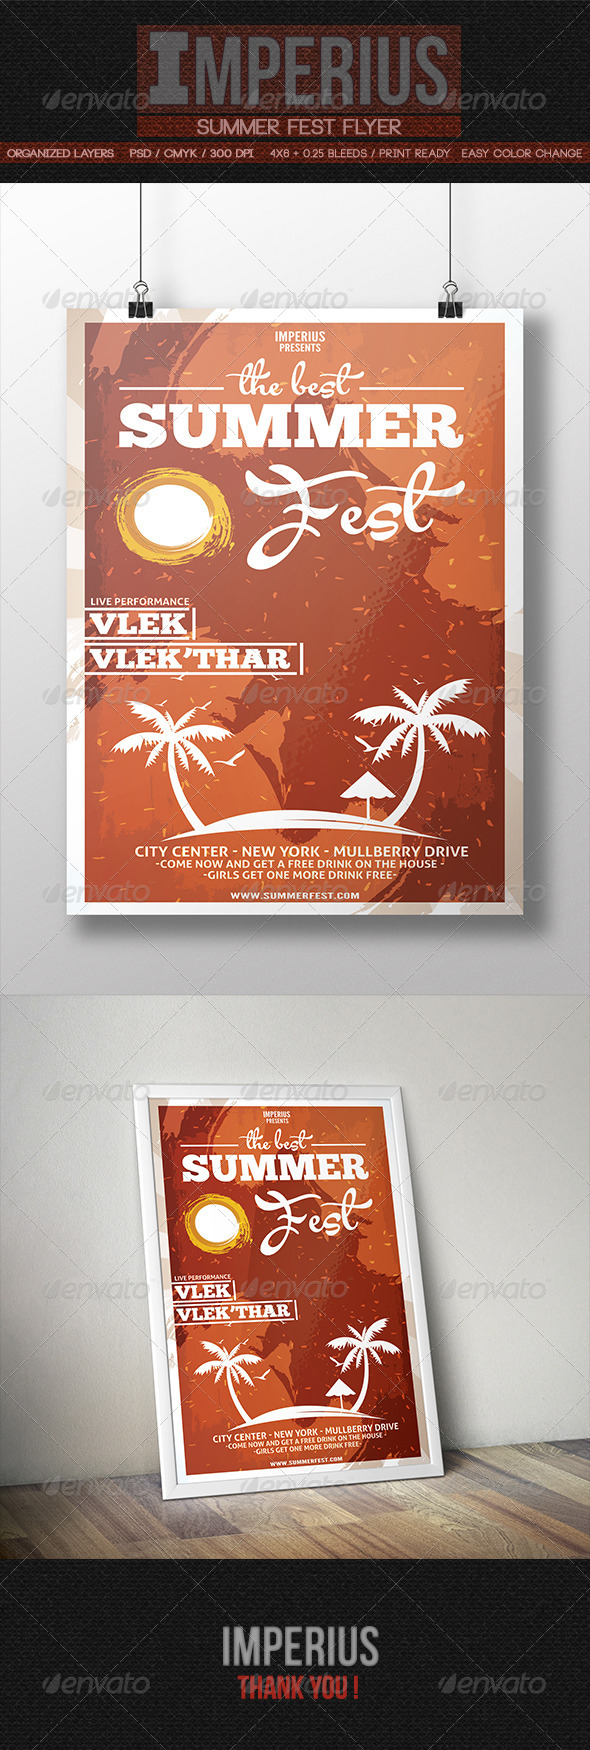 GraphicRiver Summer Fest Flyer 8510587